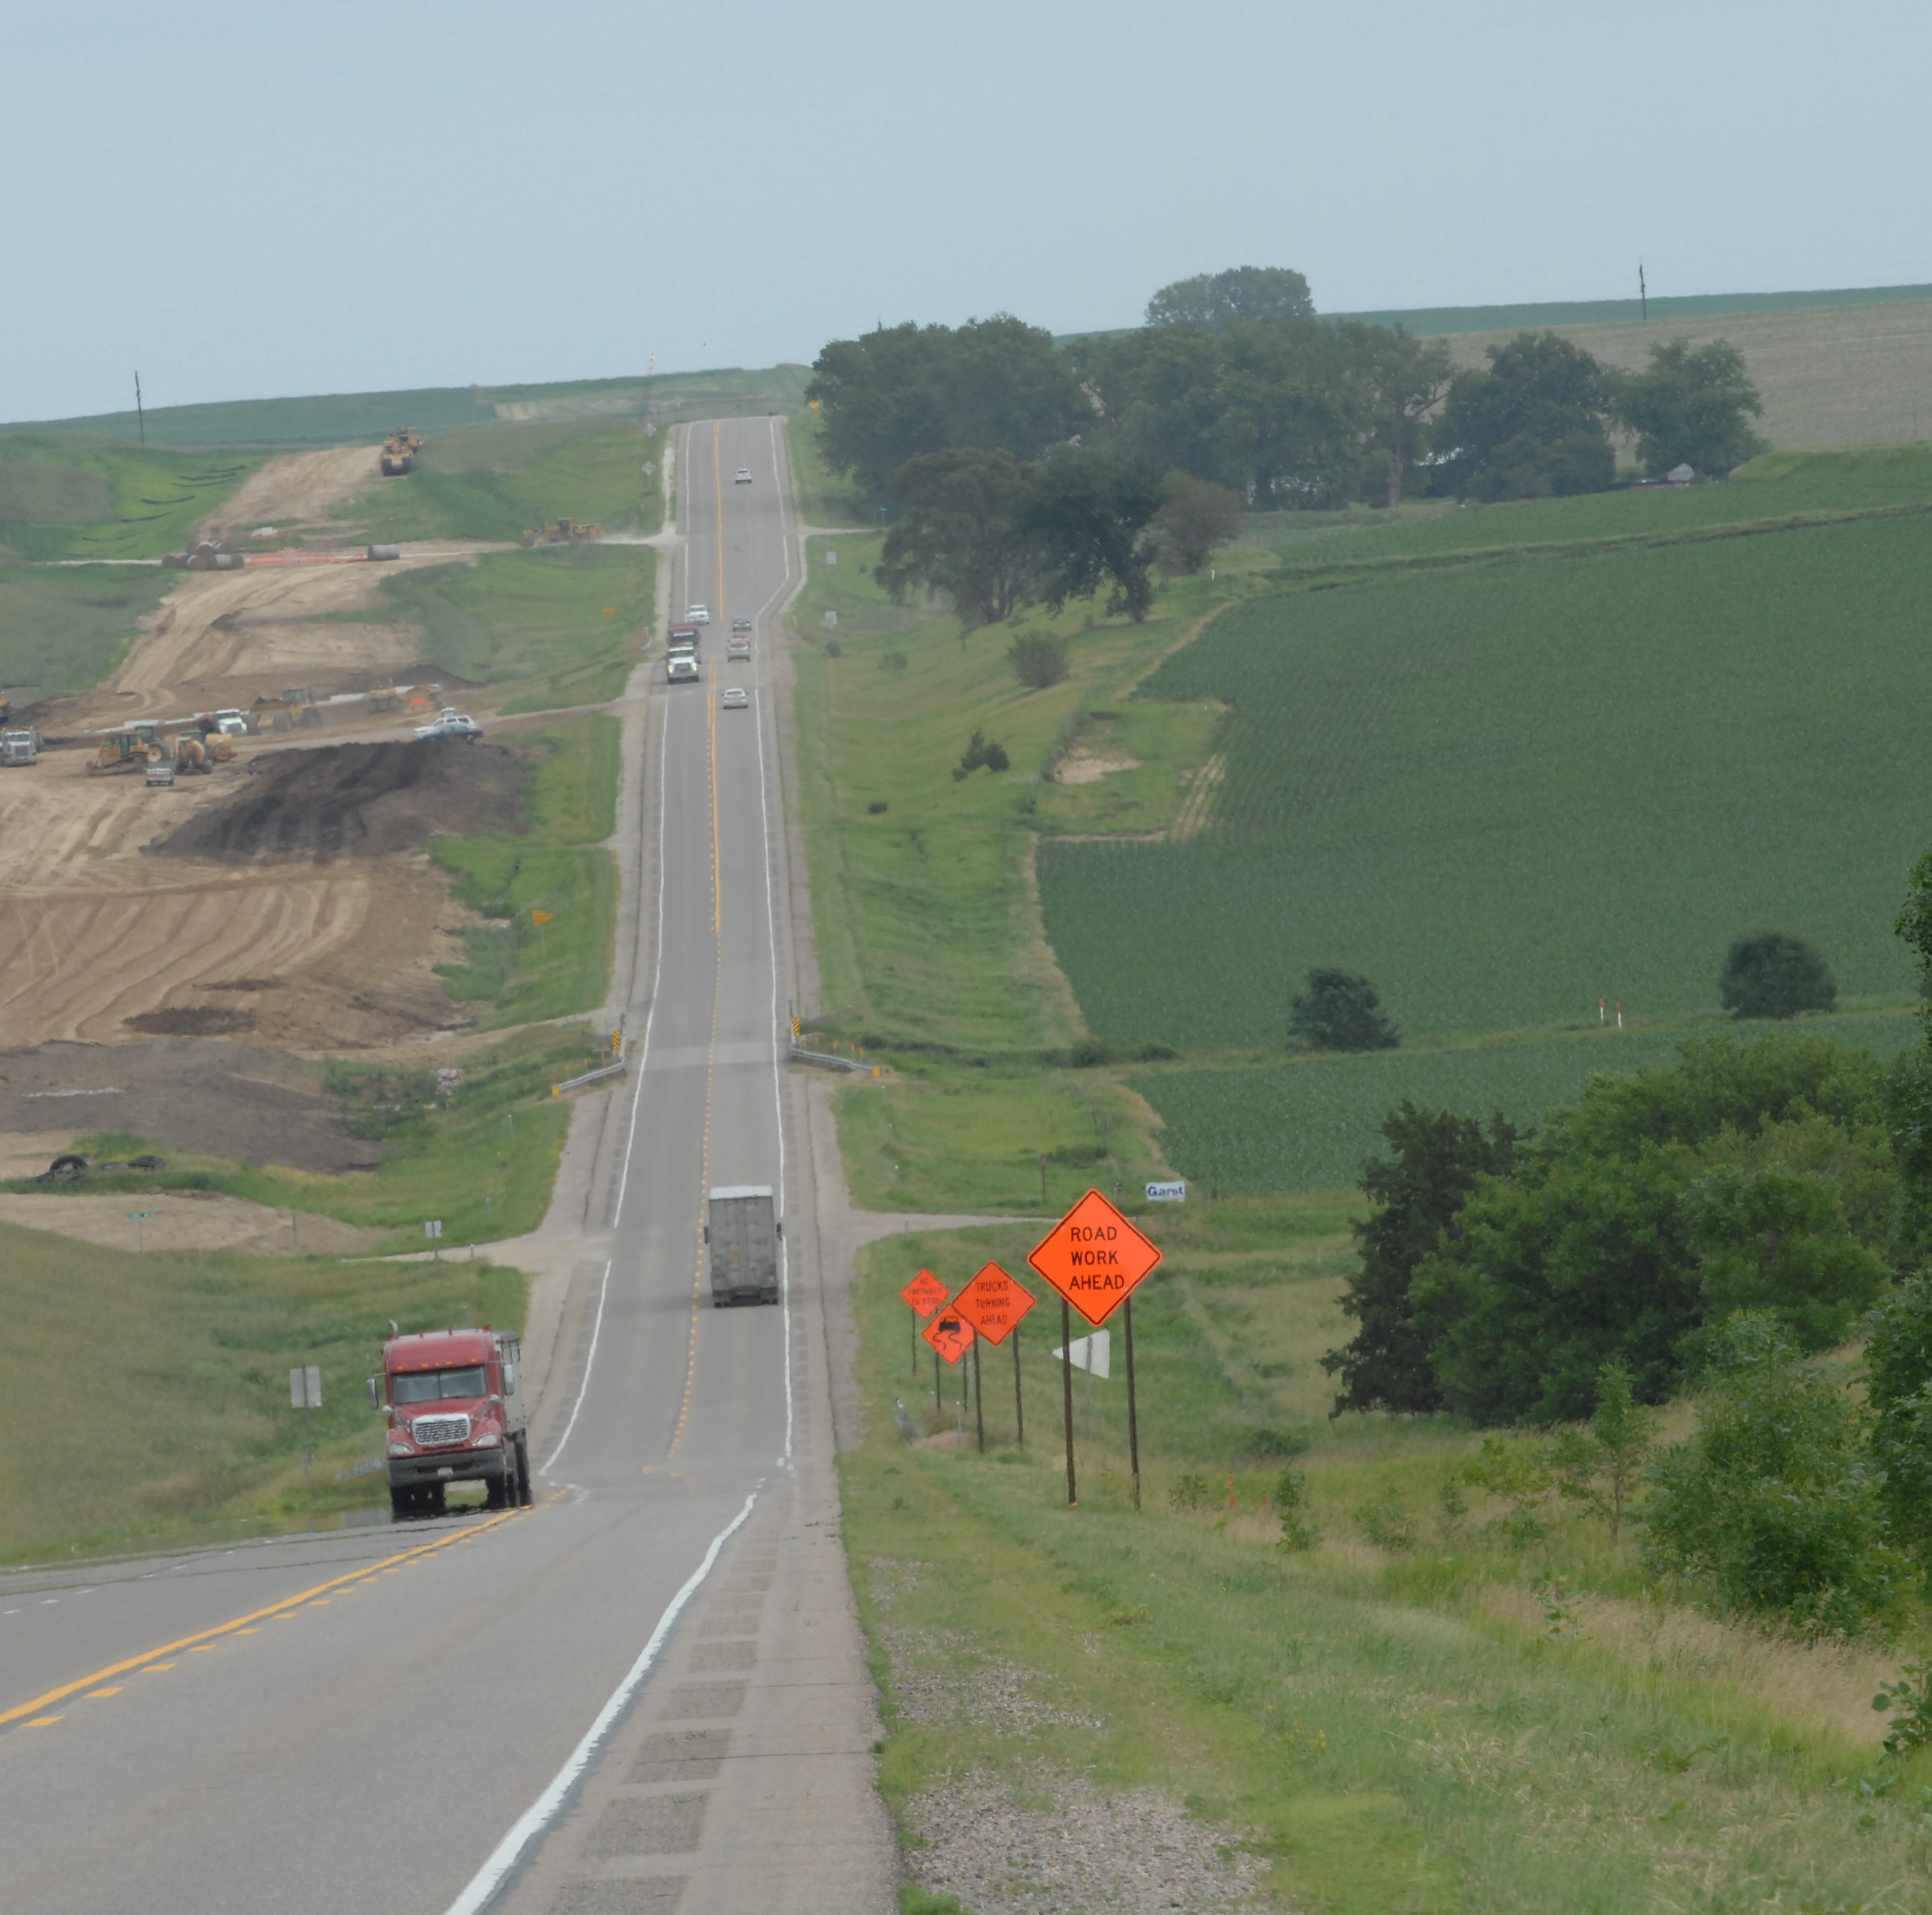 Iowa drivers, rejoice: 60 years later, U.S. Highway 20 across northern Iowa is finally done